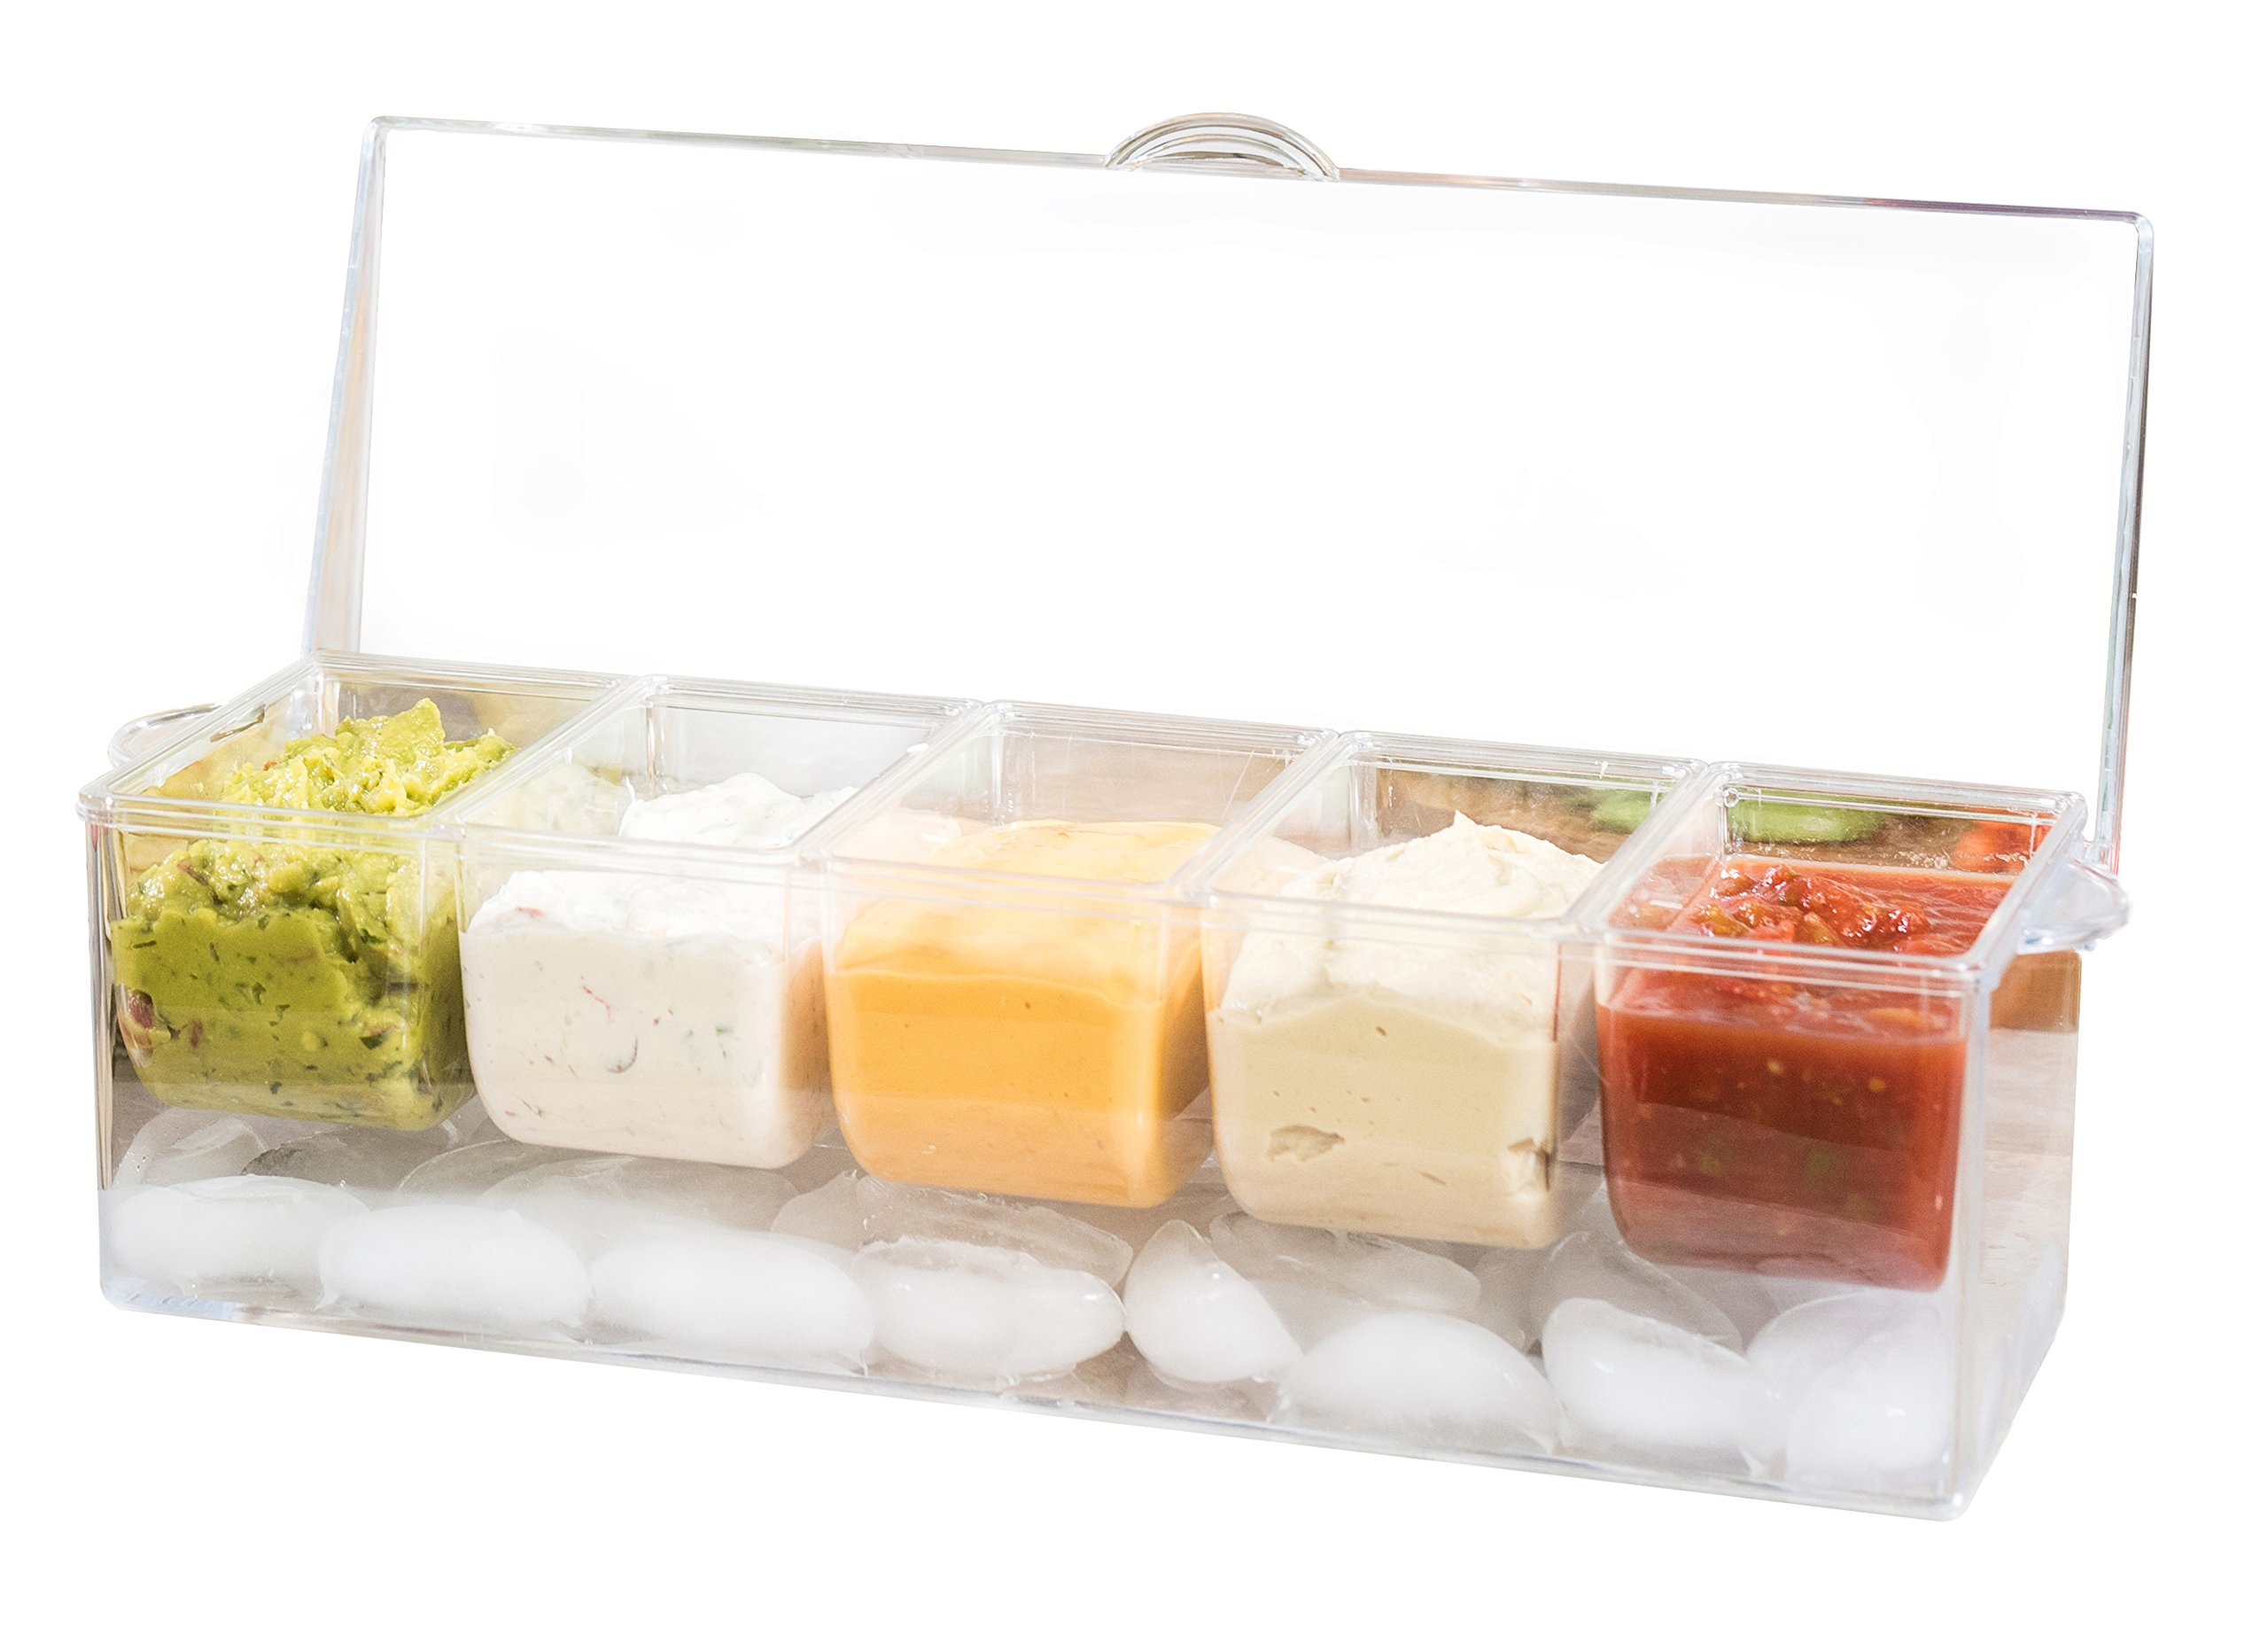 Adorn Home Ice Chilled Large Condiment Server | 5 Compartment on Ice Caddy | 5 Removable Dishes with over 2 Cup Capacity Each with Hinged Lid | Crystal Clear Plasic by Adorn Home Essentials (Image #1)